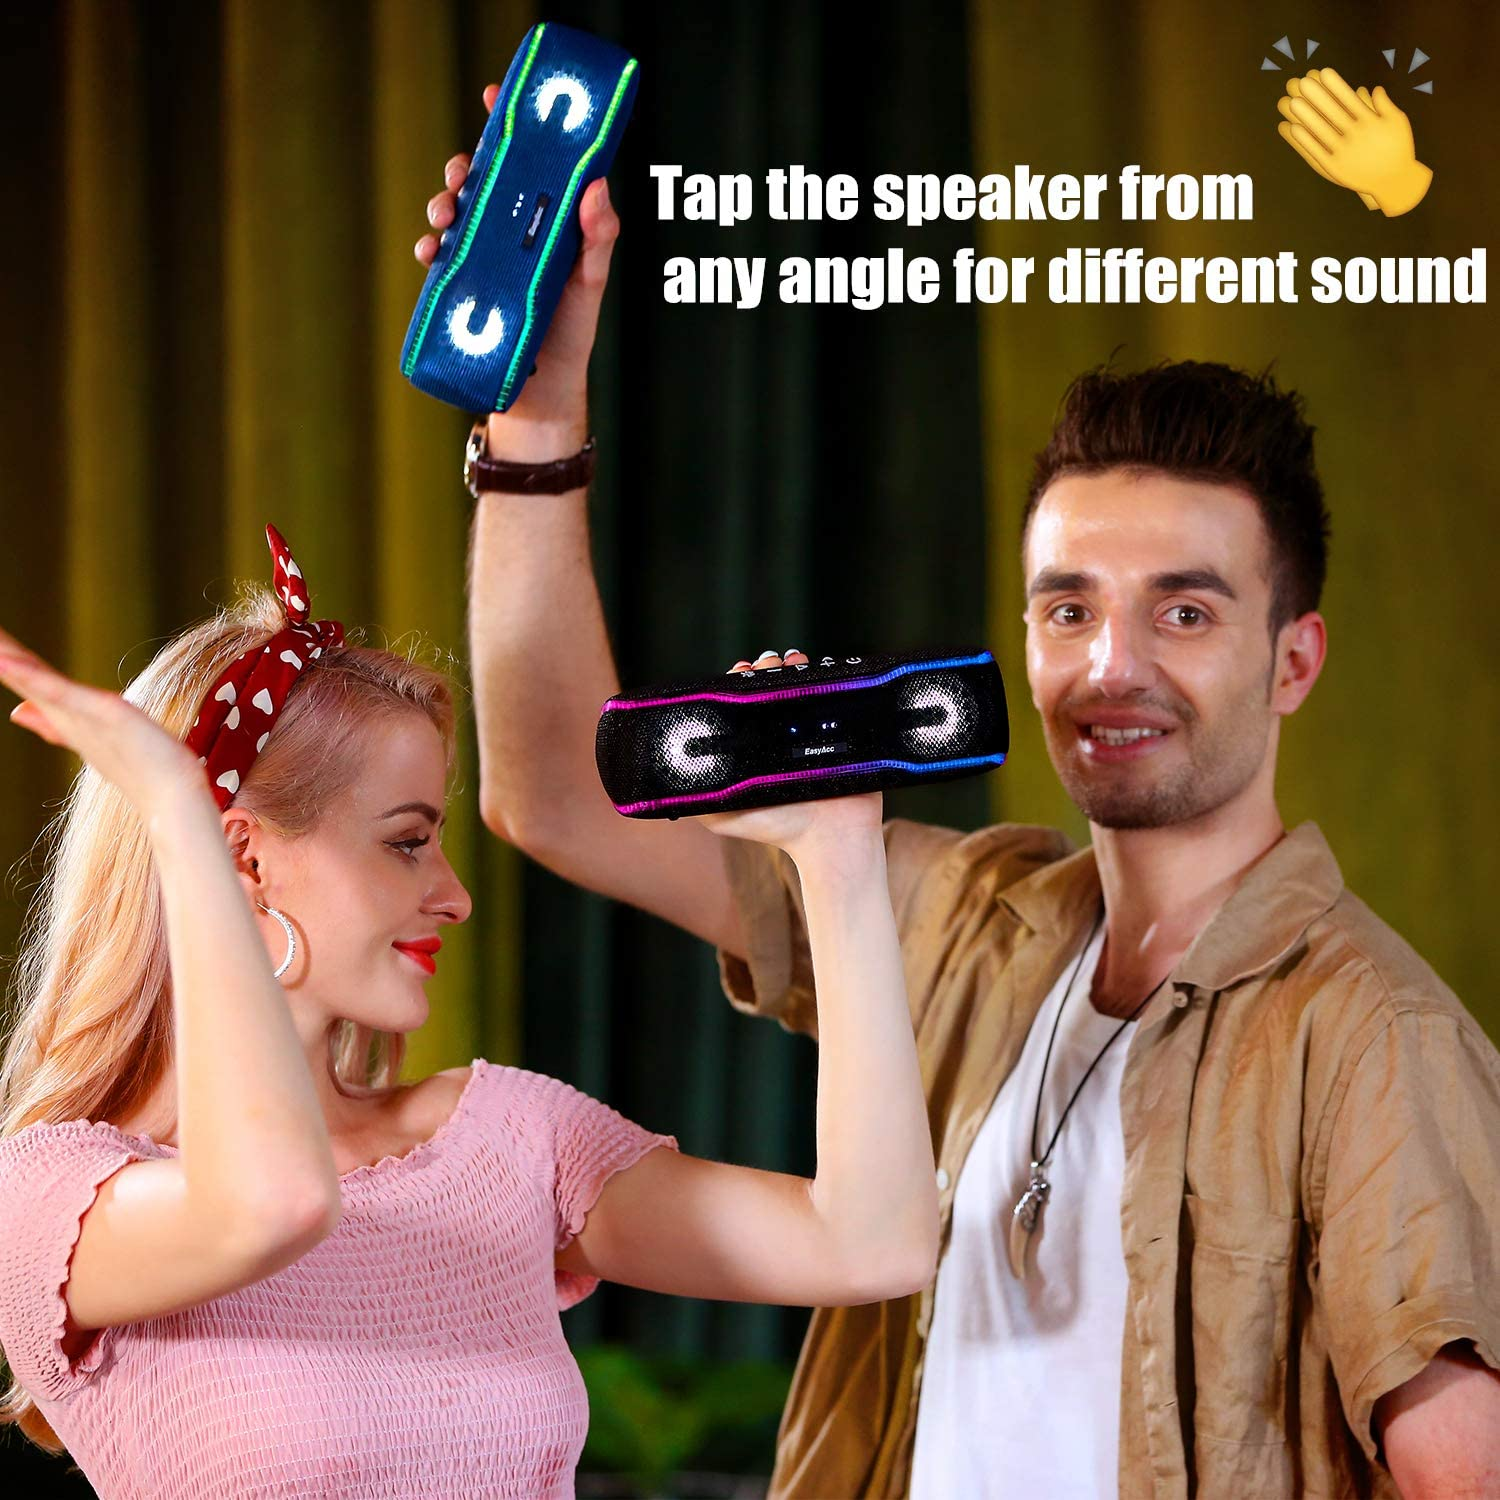 Portable Bluetooth Speaker EasyAcc IPX7 Waterproof Wireless Party Speaker with Dual 10W Stereo Sound Enhanced Bass Built-in Mic Hands-Free Call Tap Booster Black 66ft Connection Range